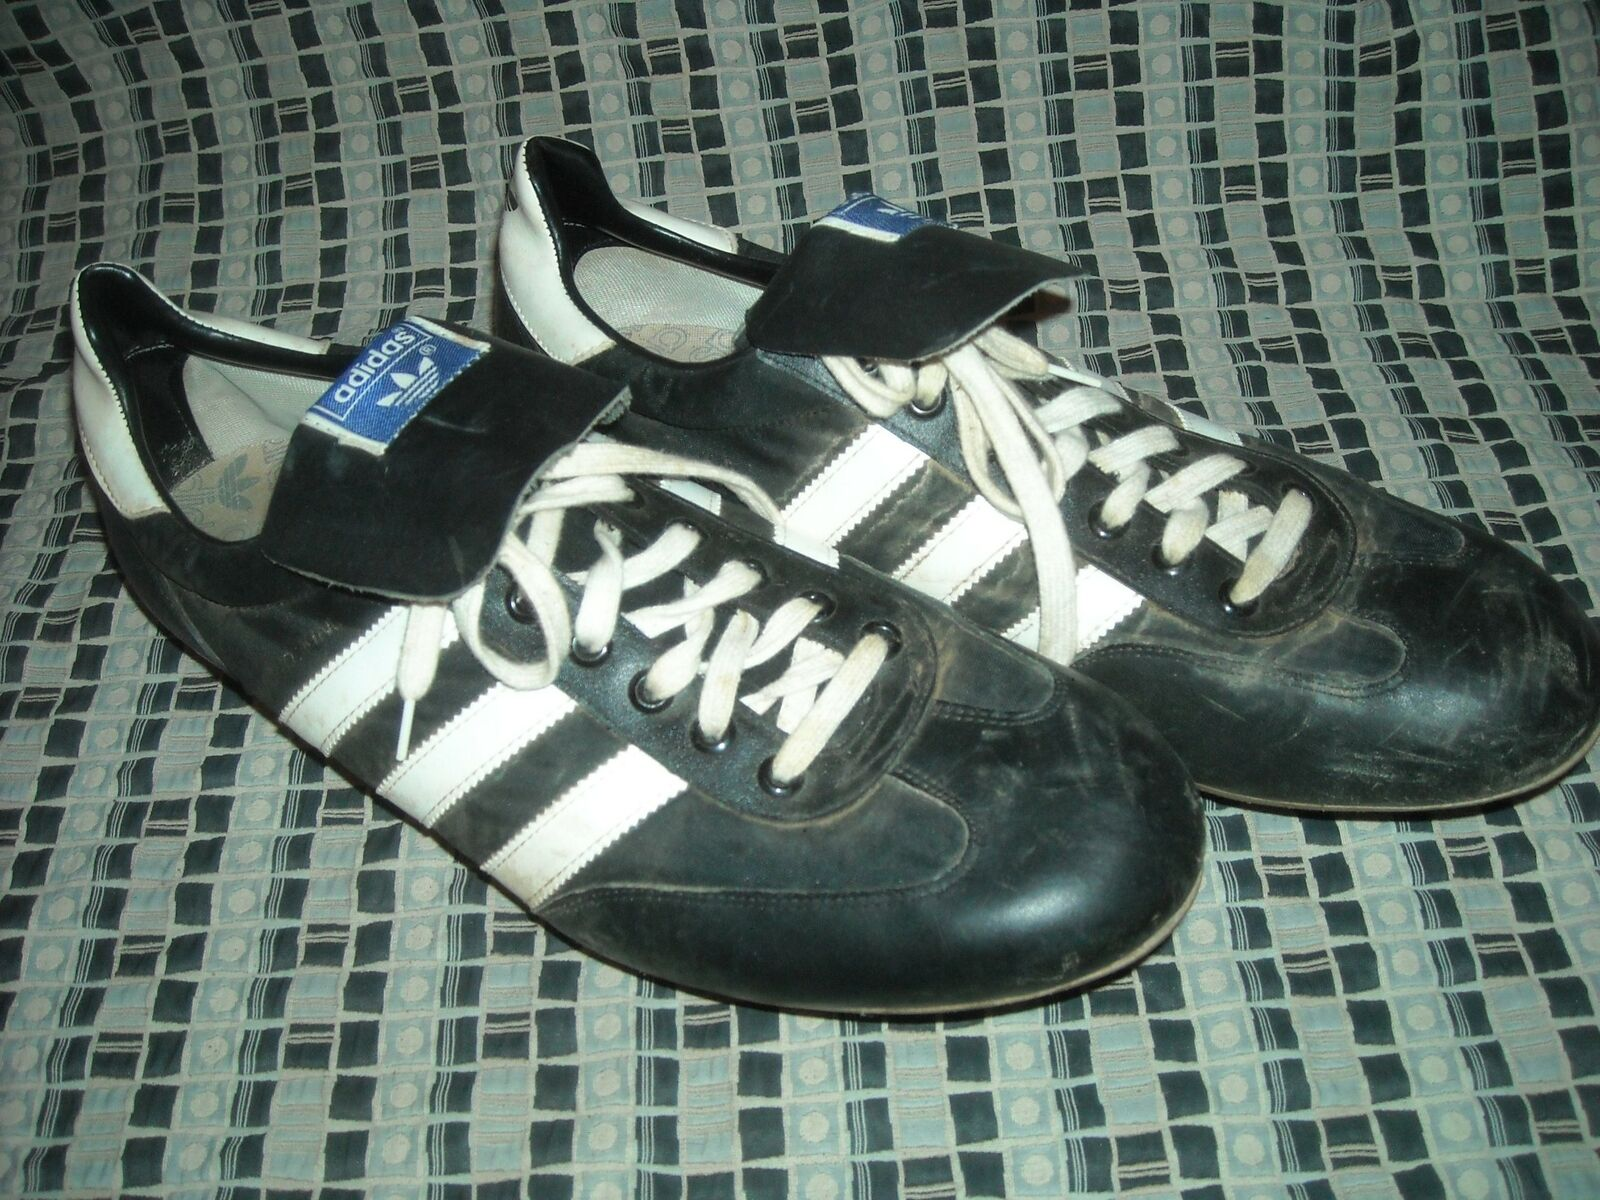 VTG 70S MENS 12.5 ADIDAS TAIWAN METAL CLEATS DIAMOND KING SHOES SNEAKERS